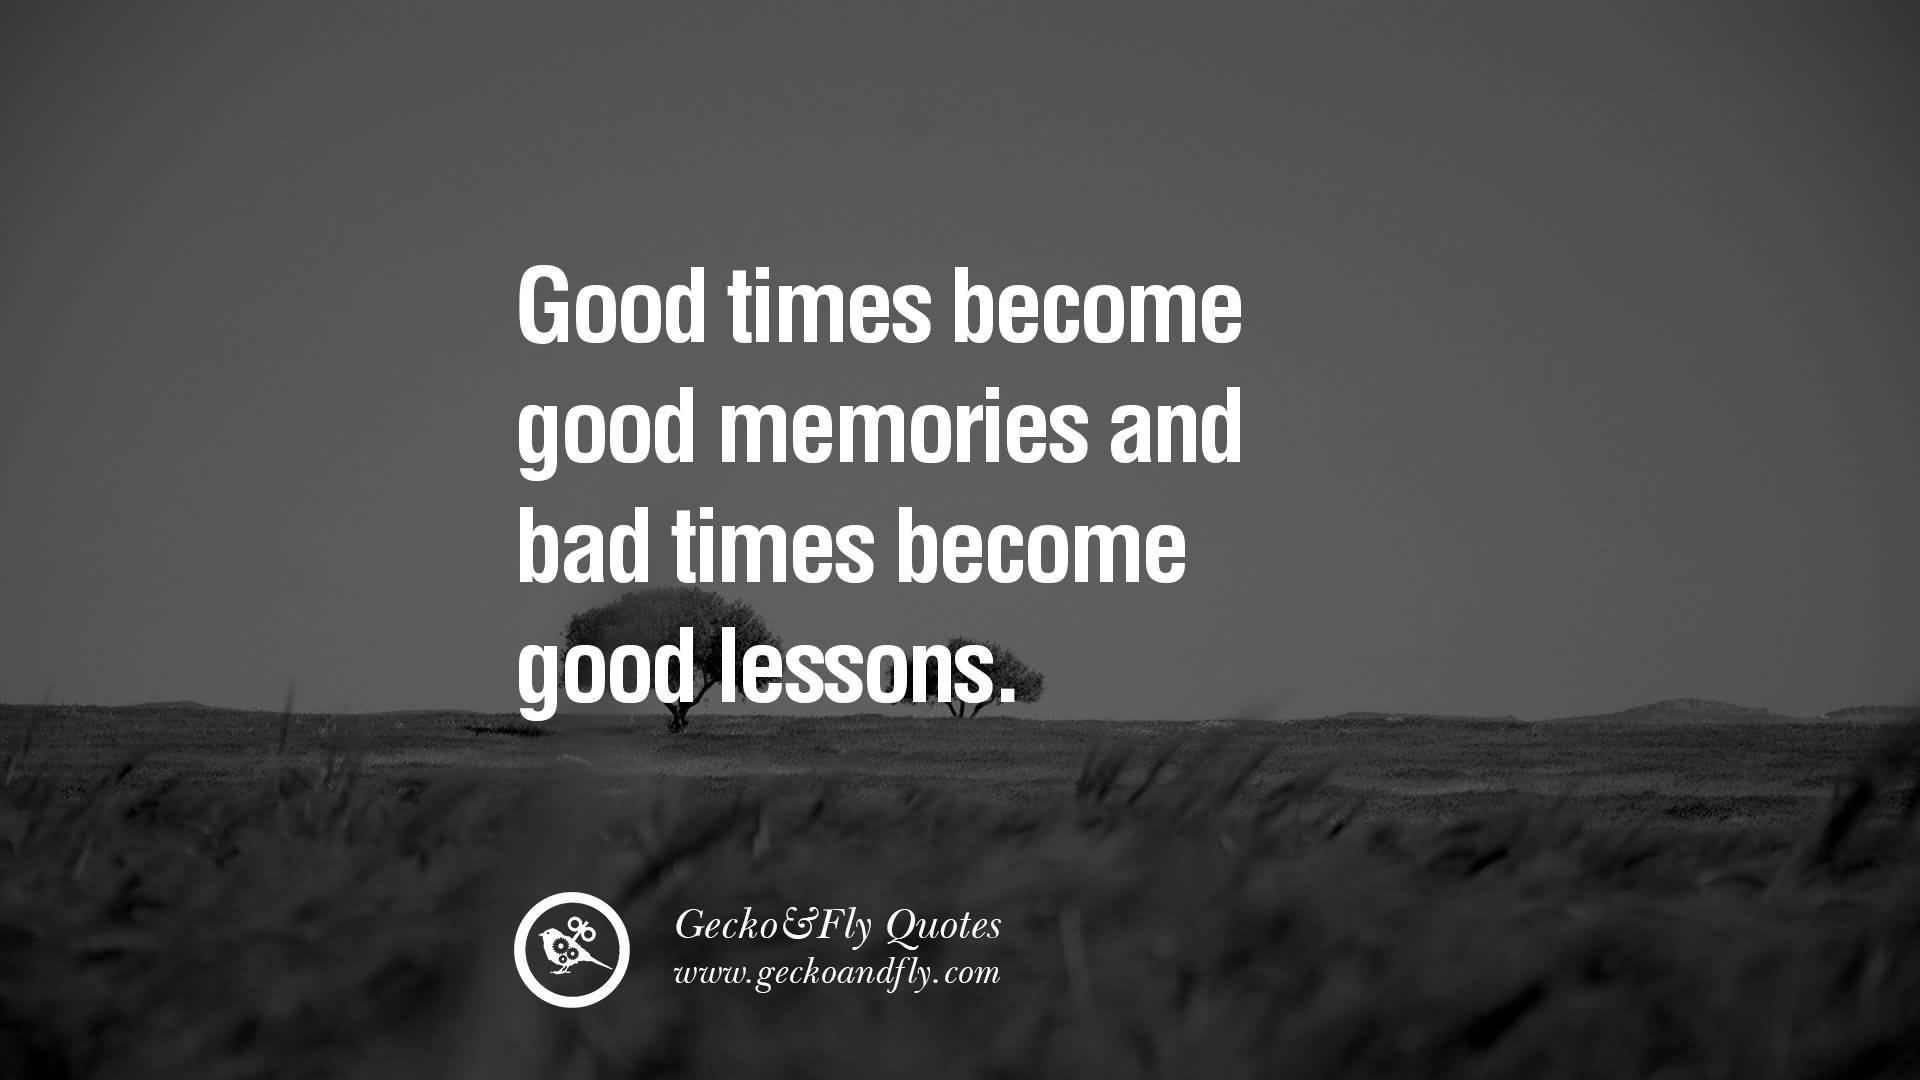 Quotes About Life: 20 Quotes About Life Lessons And Moving On